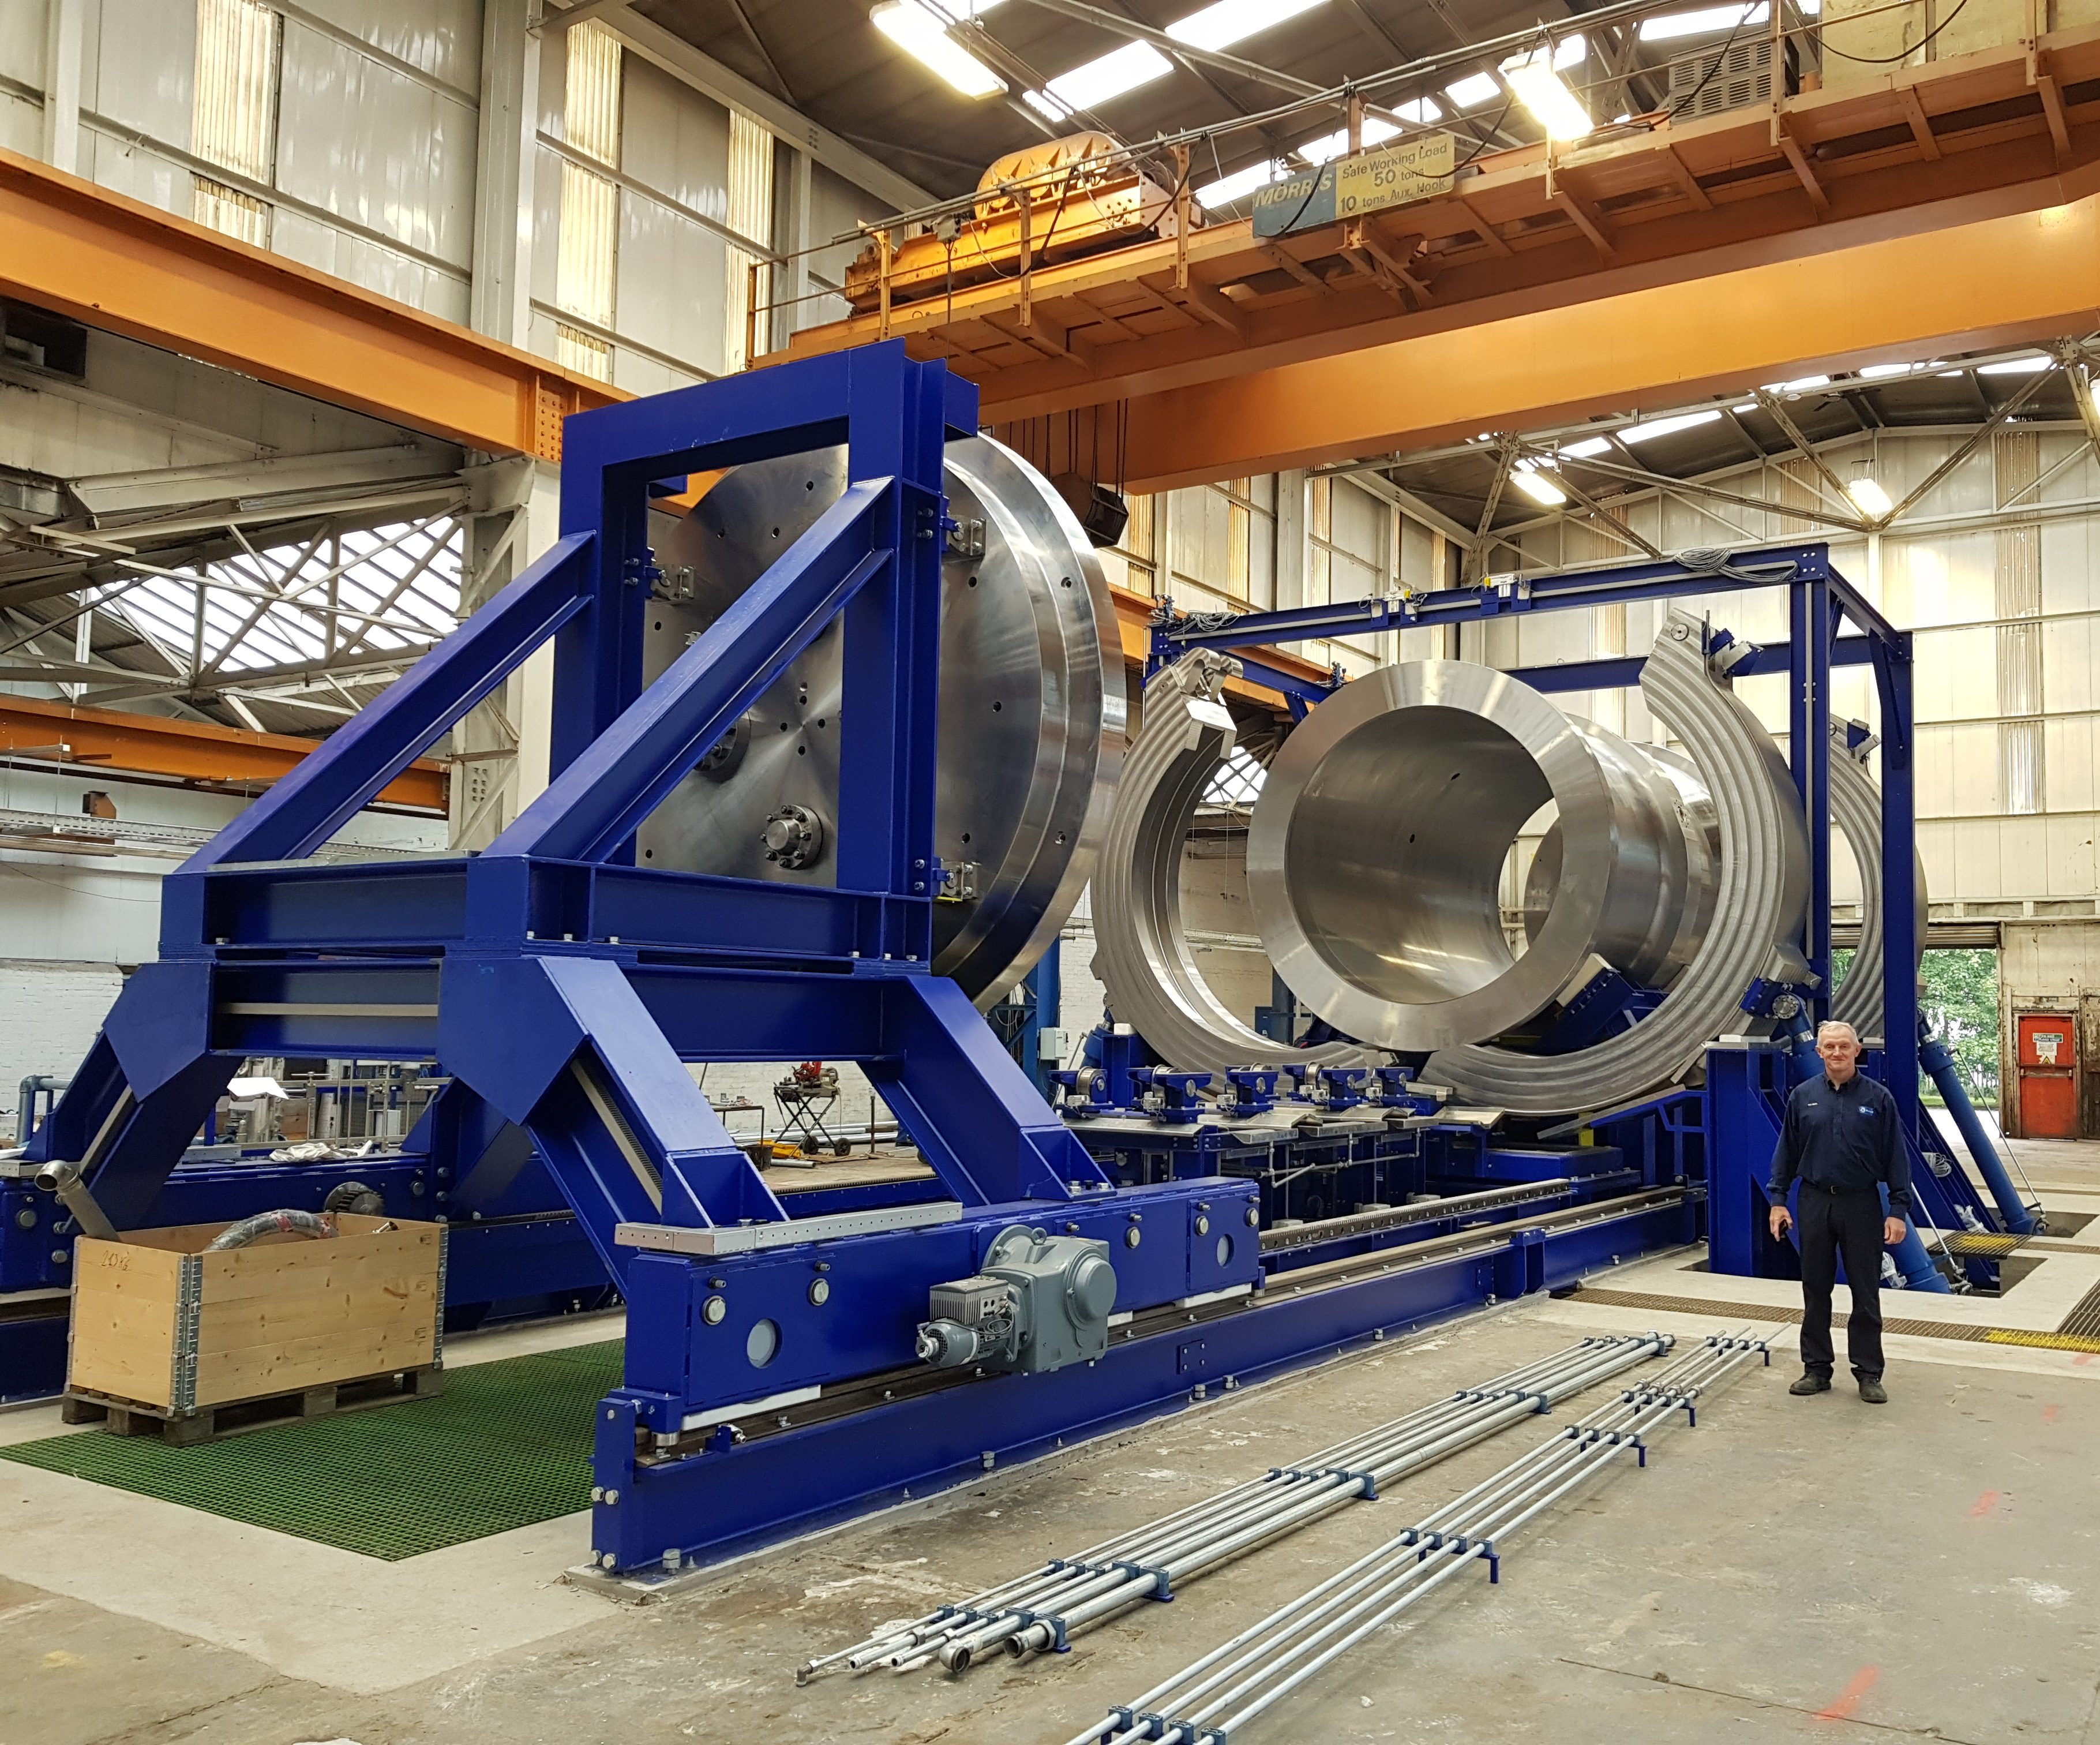 Tyne Subsea General Manager, Paul Smith, next to Tyne Subsea's largest hyperbaric chamber to show its scale